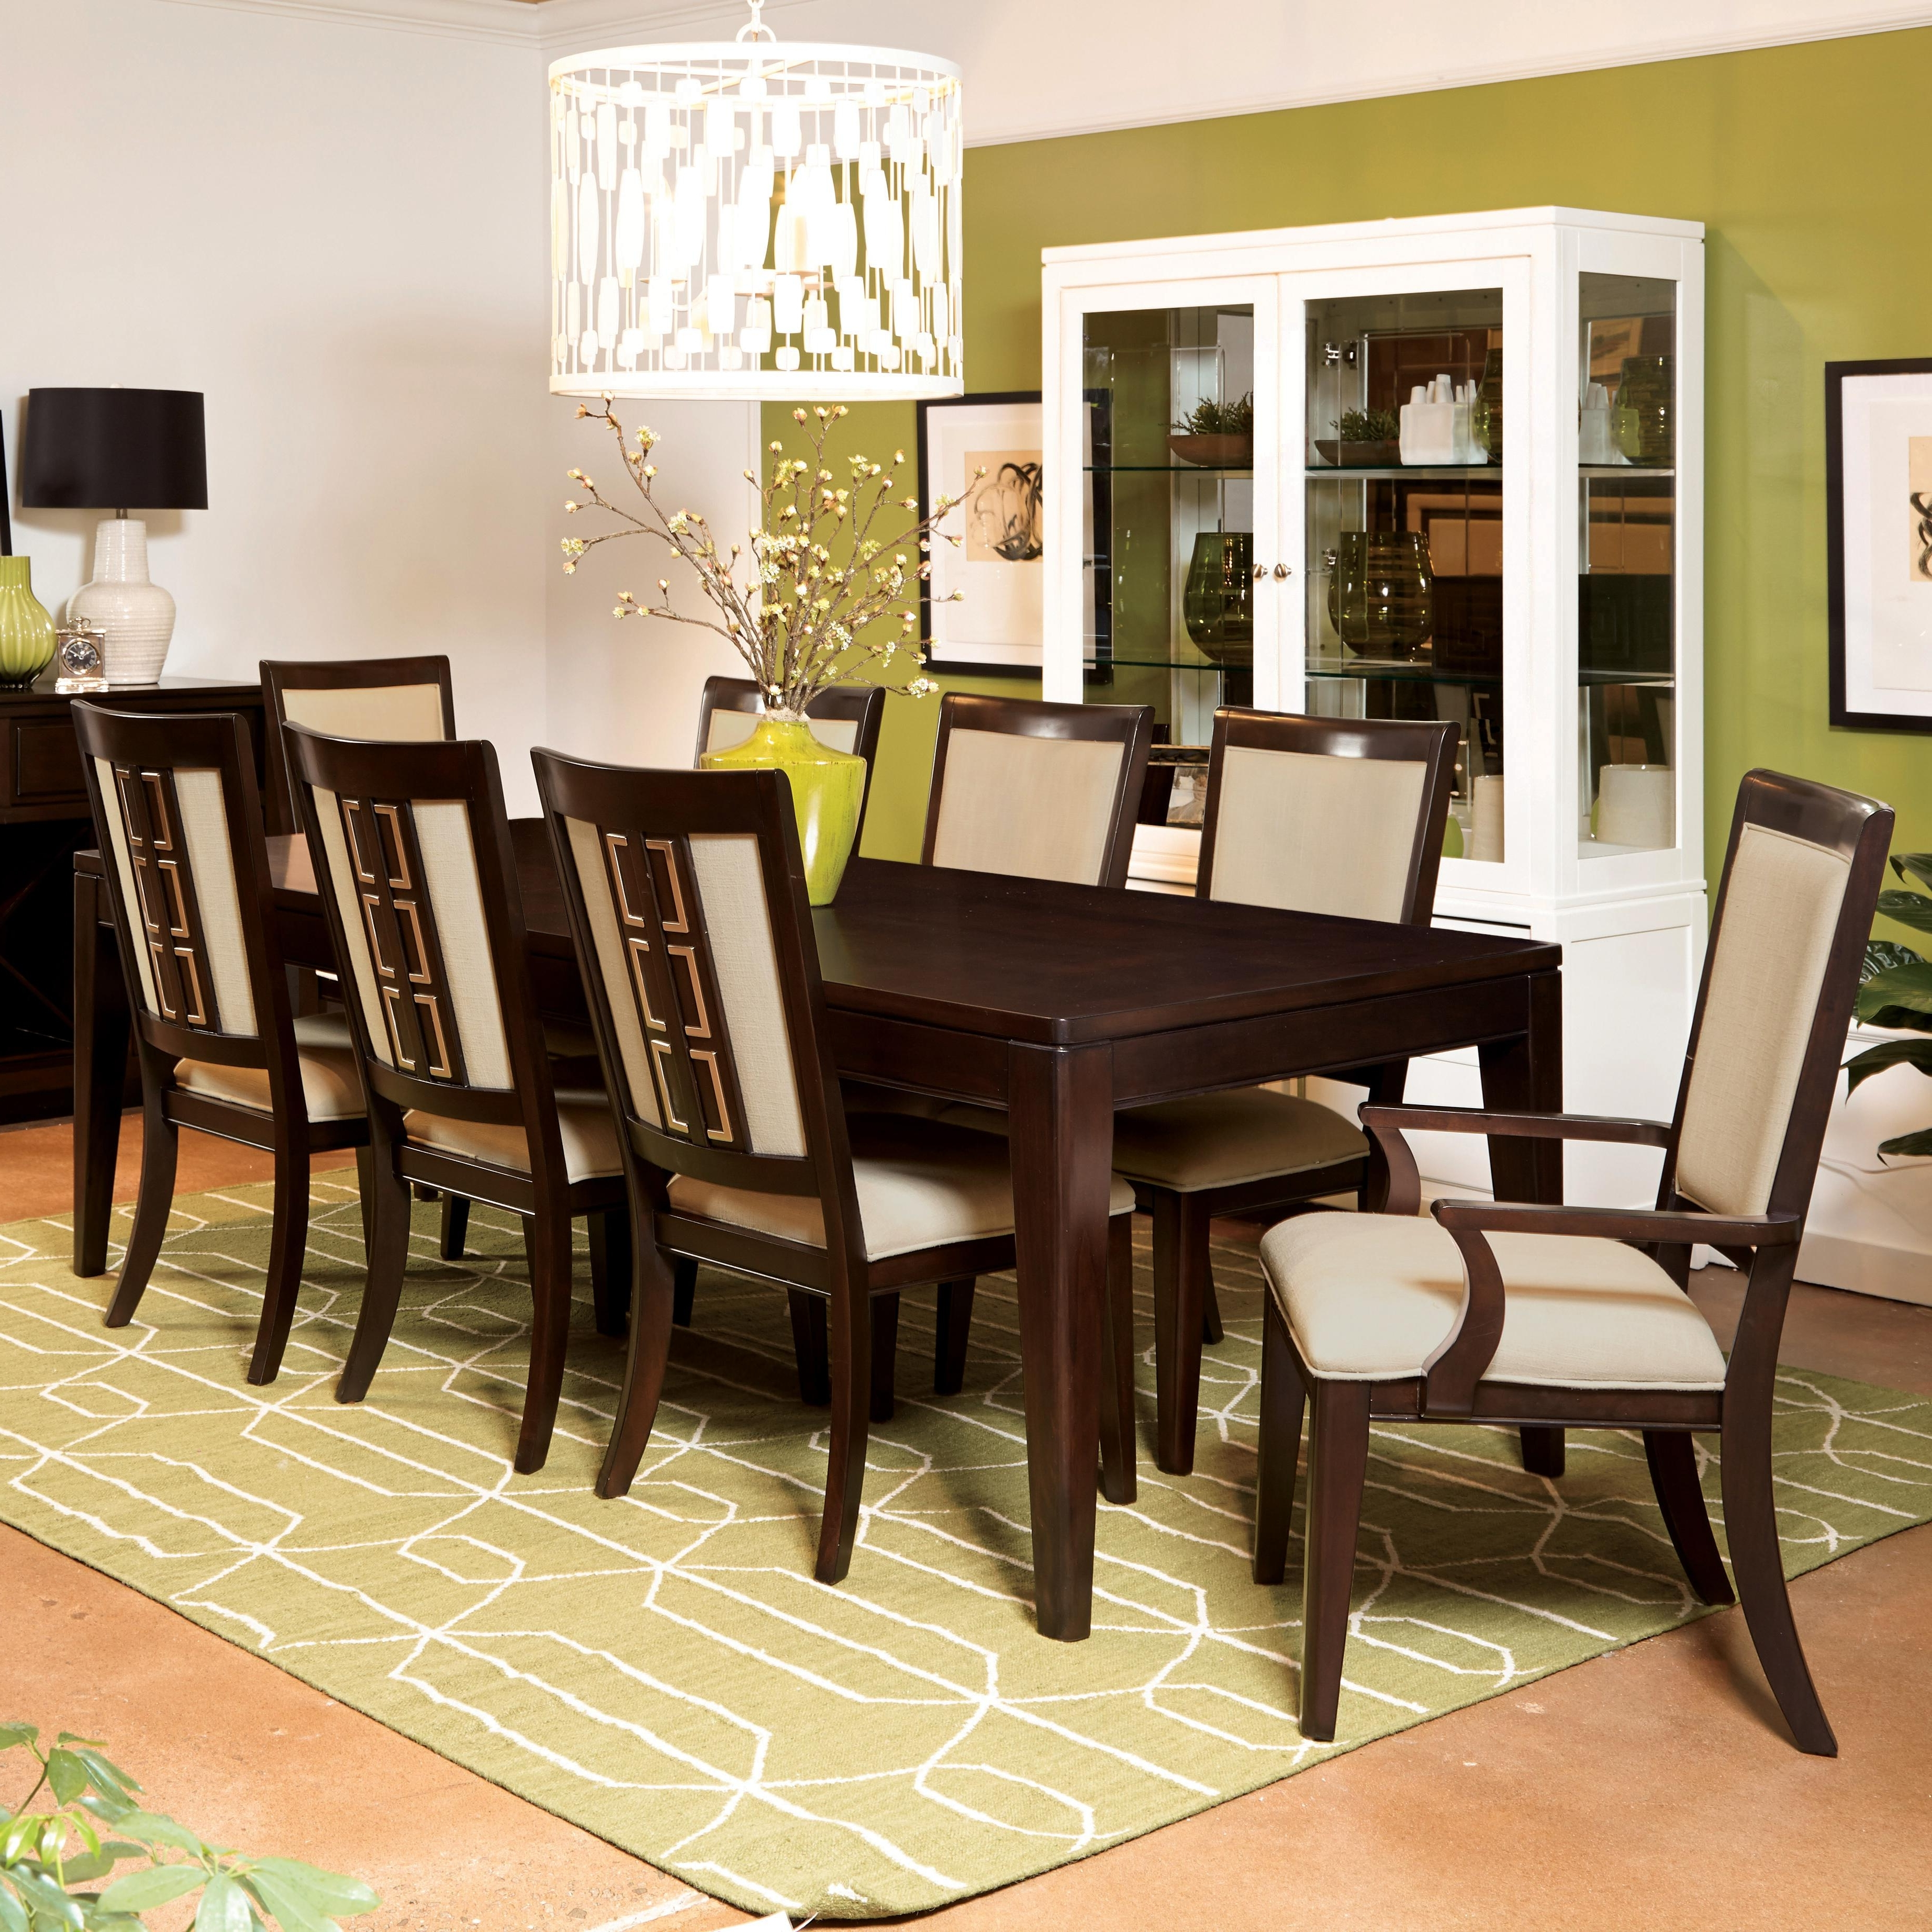 Famous Contemporary Dining Room Tables And Chairs Within Samuel Lawrence Brighton 9 Piece Contemporary Dining Table Set (View 12 of 25)